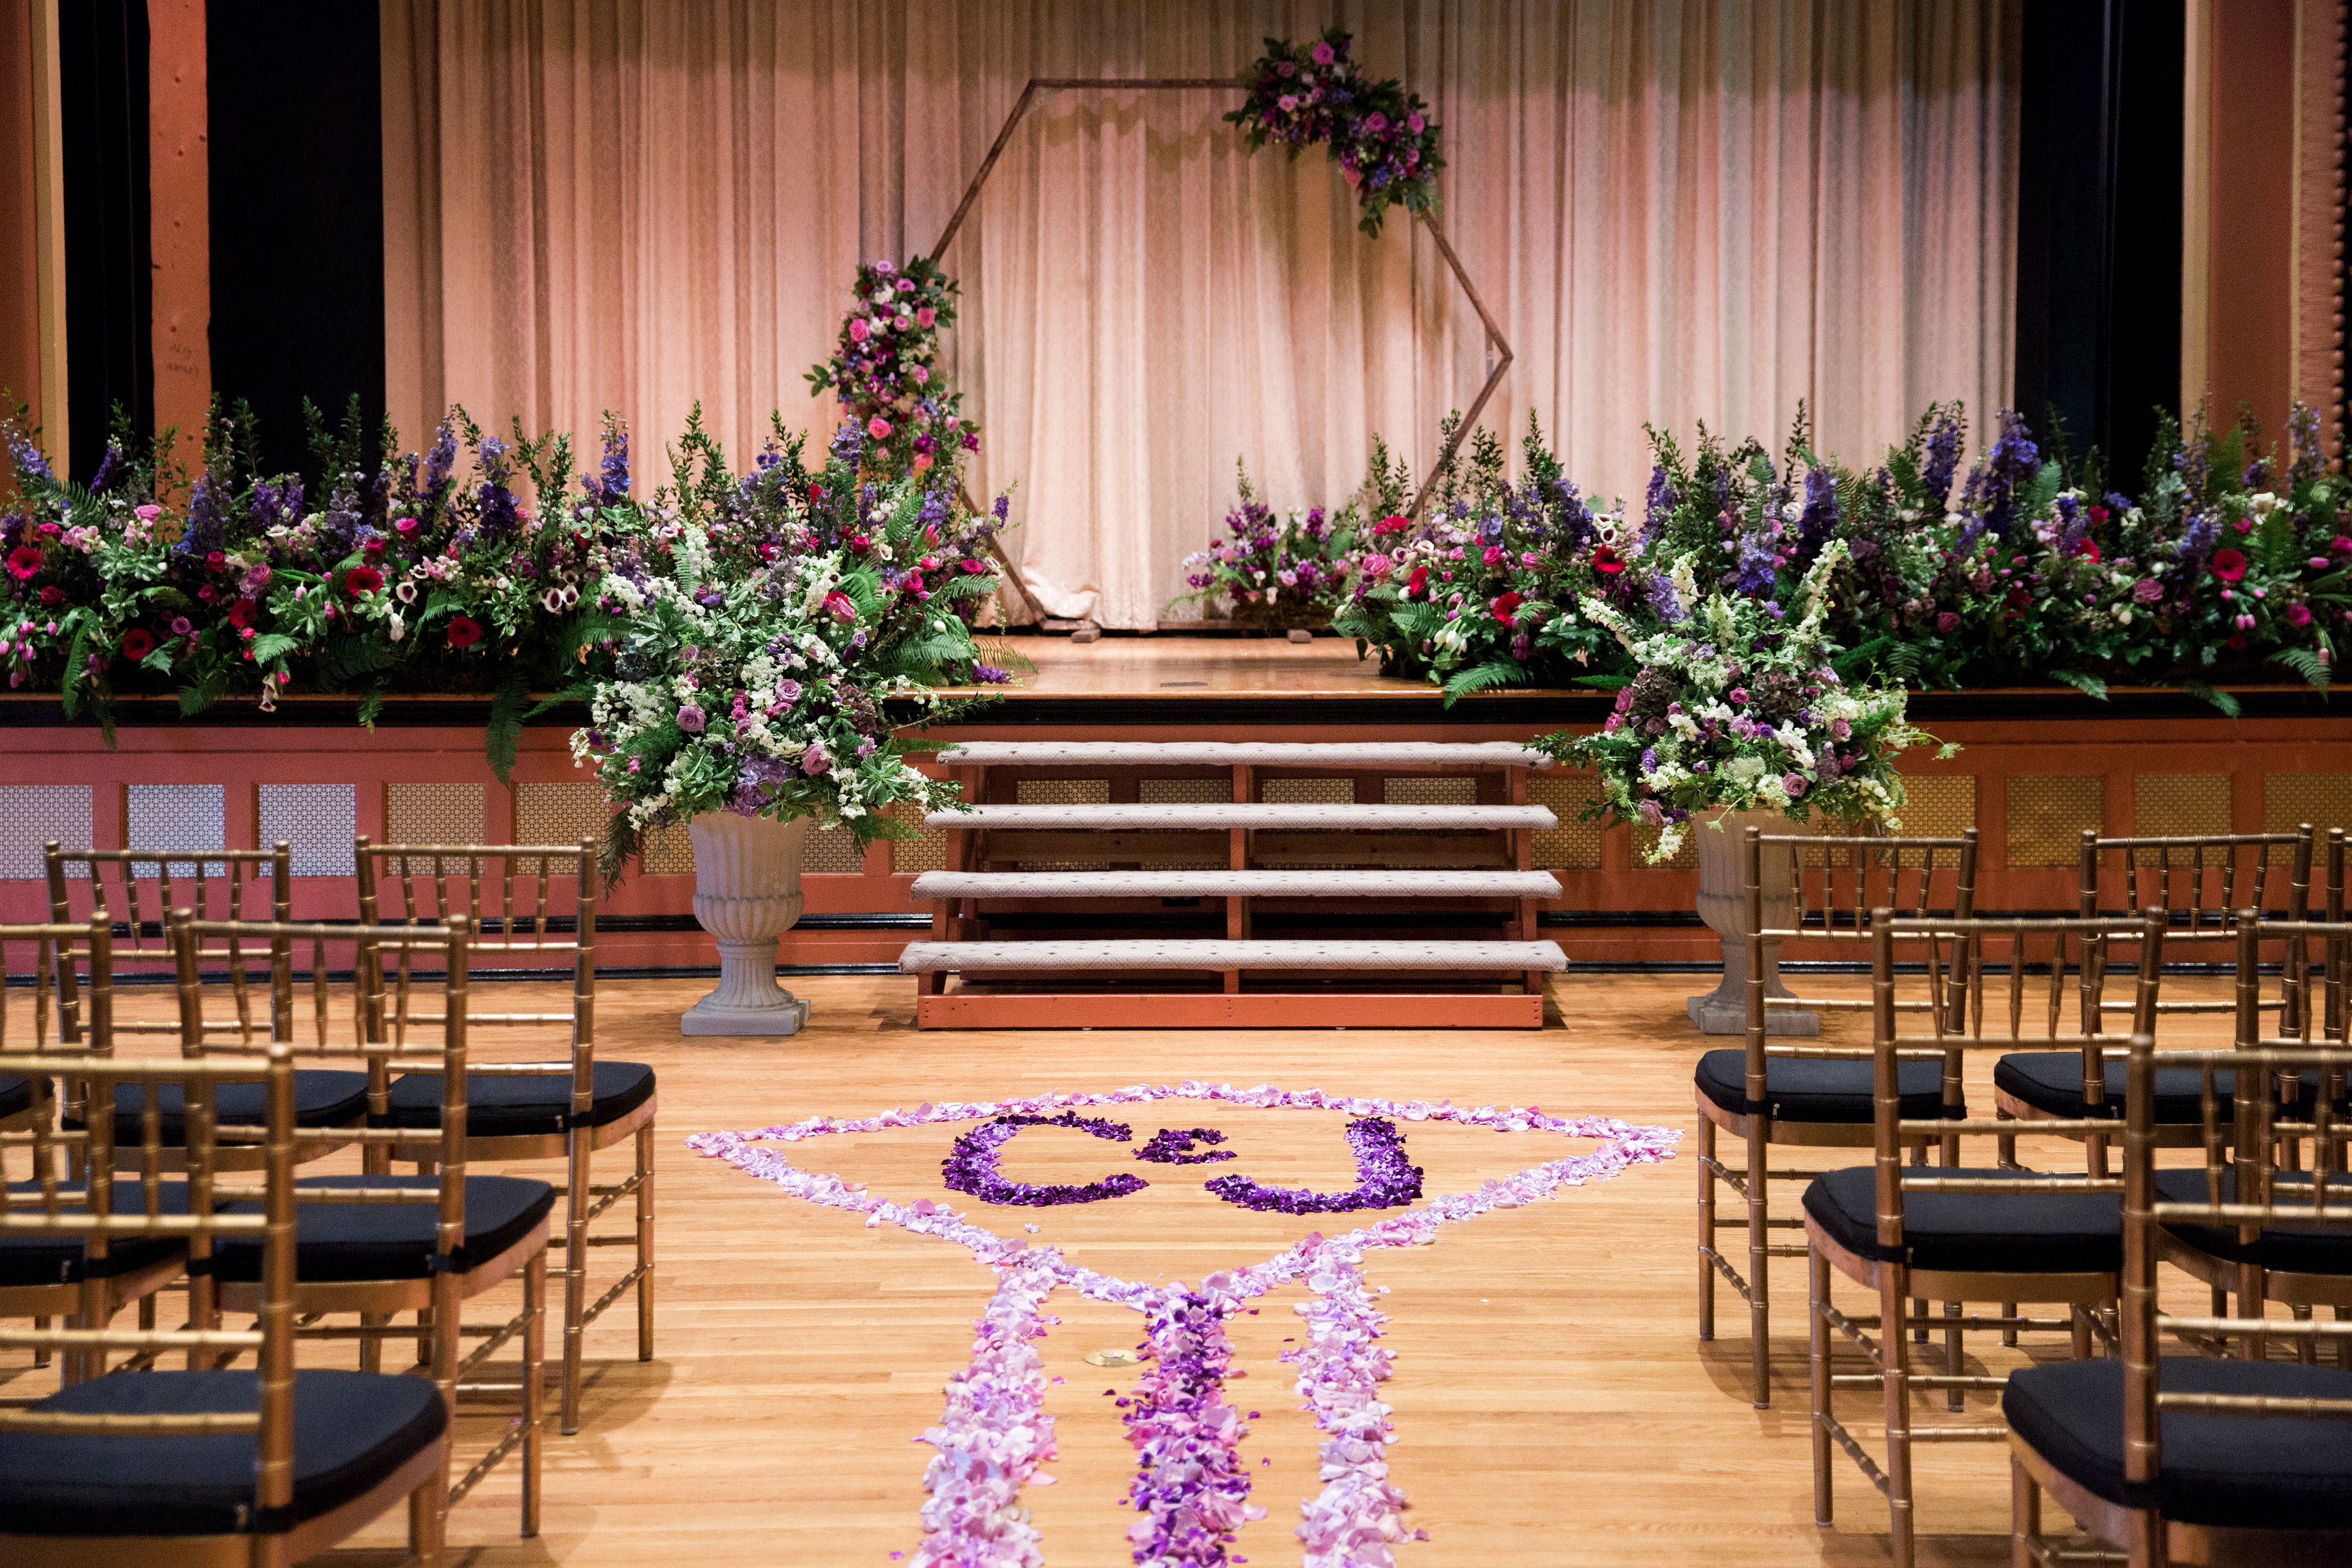 ceremony flowers wooden octagon wedding bolling haxall house aisle design richmond virginia wedding florist purple flowers